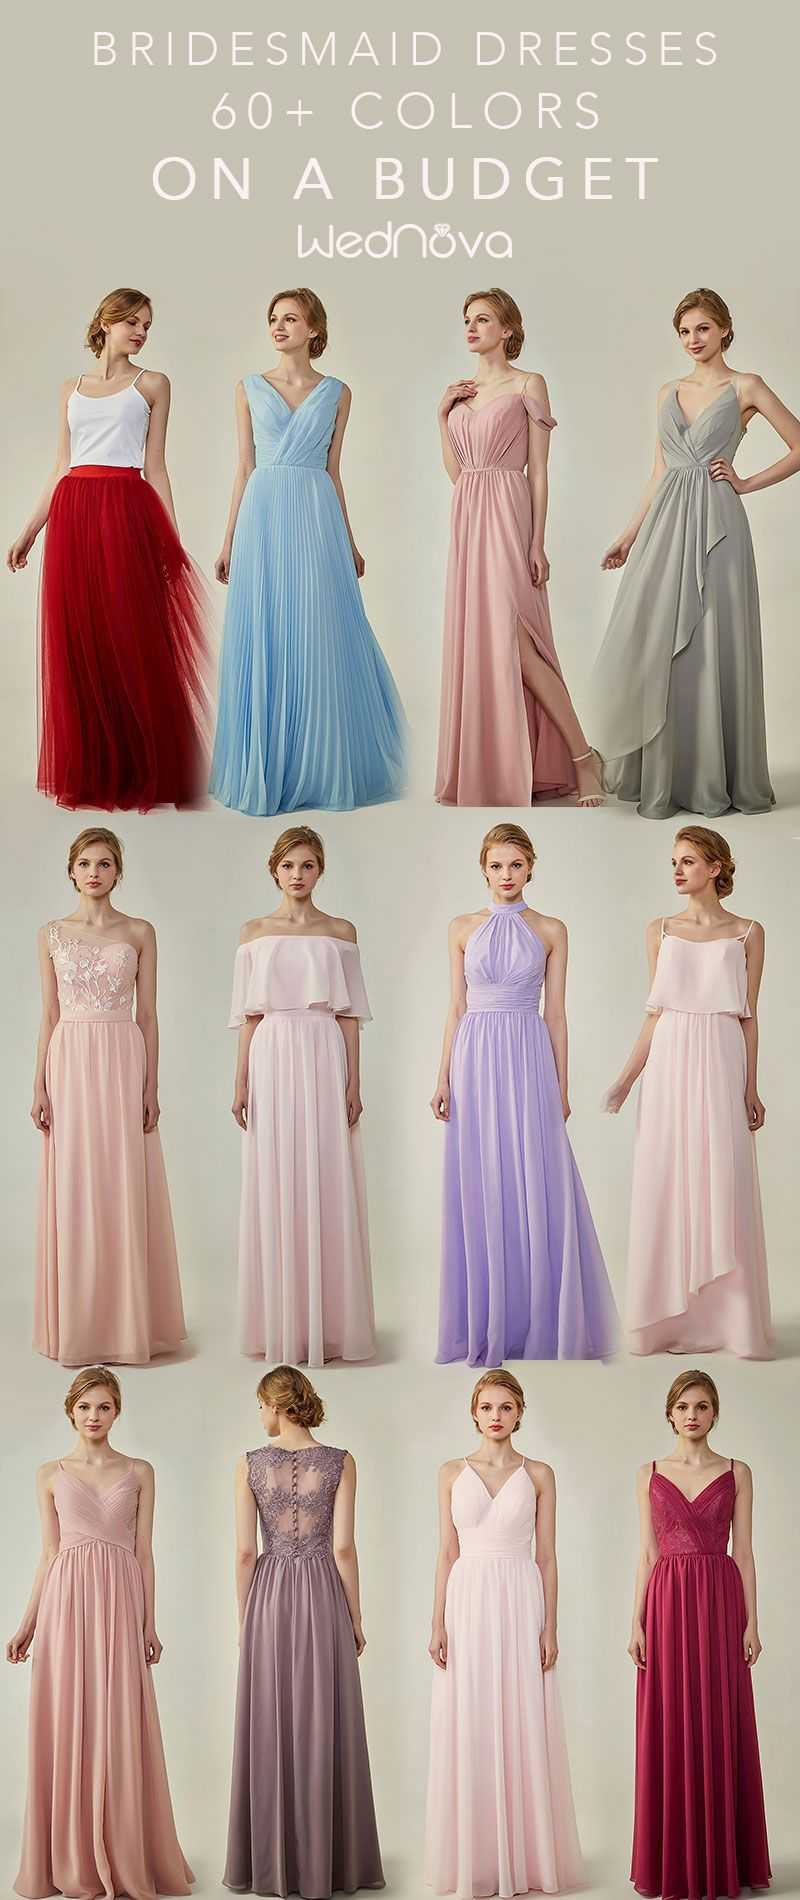 afc65f4f0 bridesmaid dresses on a budget Wednova offers 60+ colors. Shop our ...